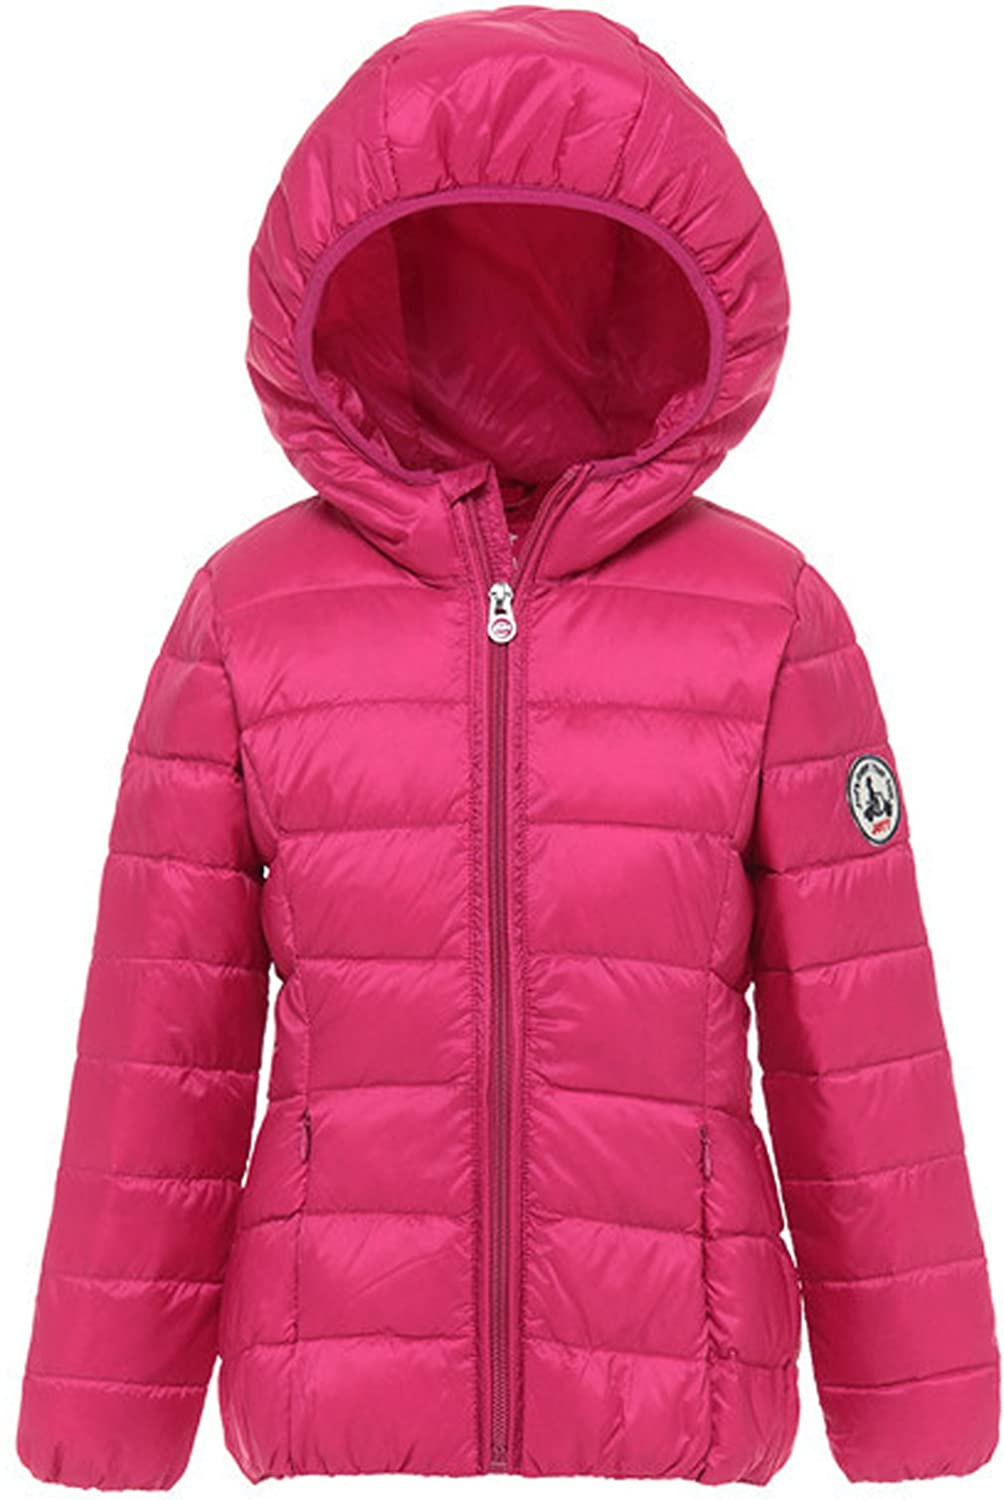 Wenseny Boys Girls Winter Packable Quilted Hooded Down Jacket Lightweight ace006